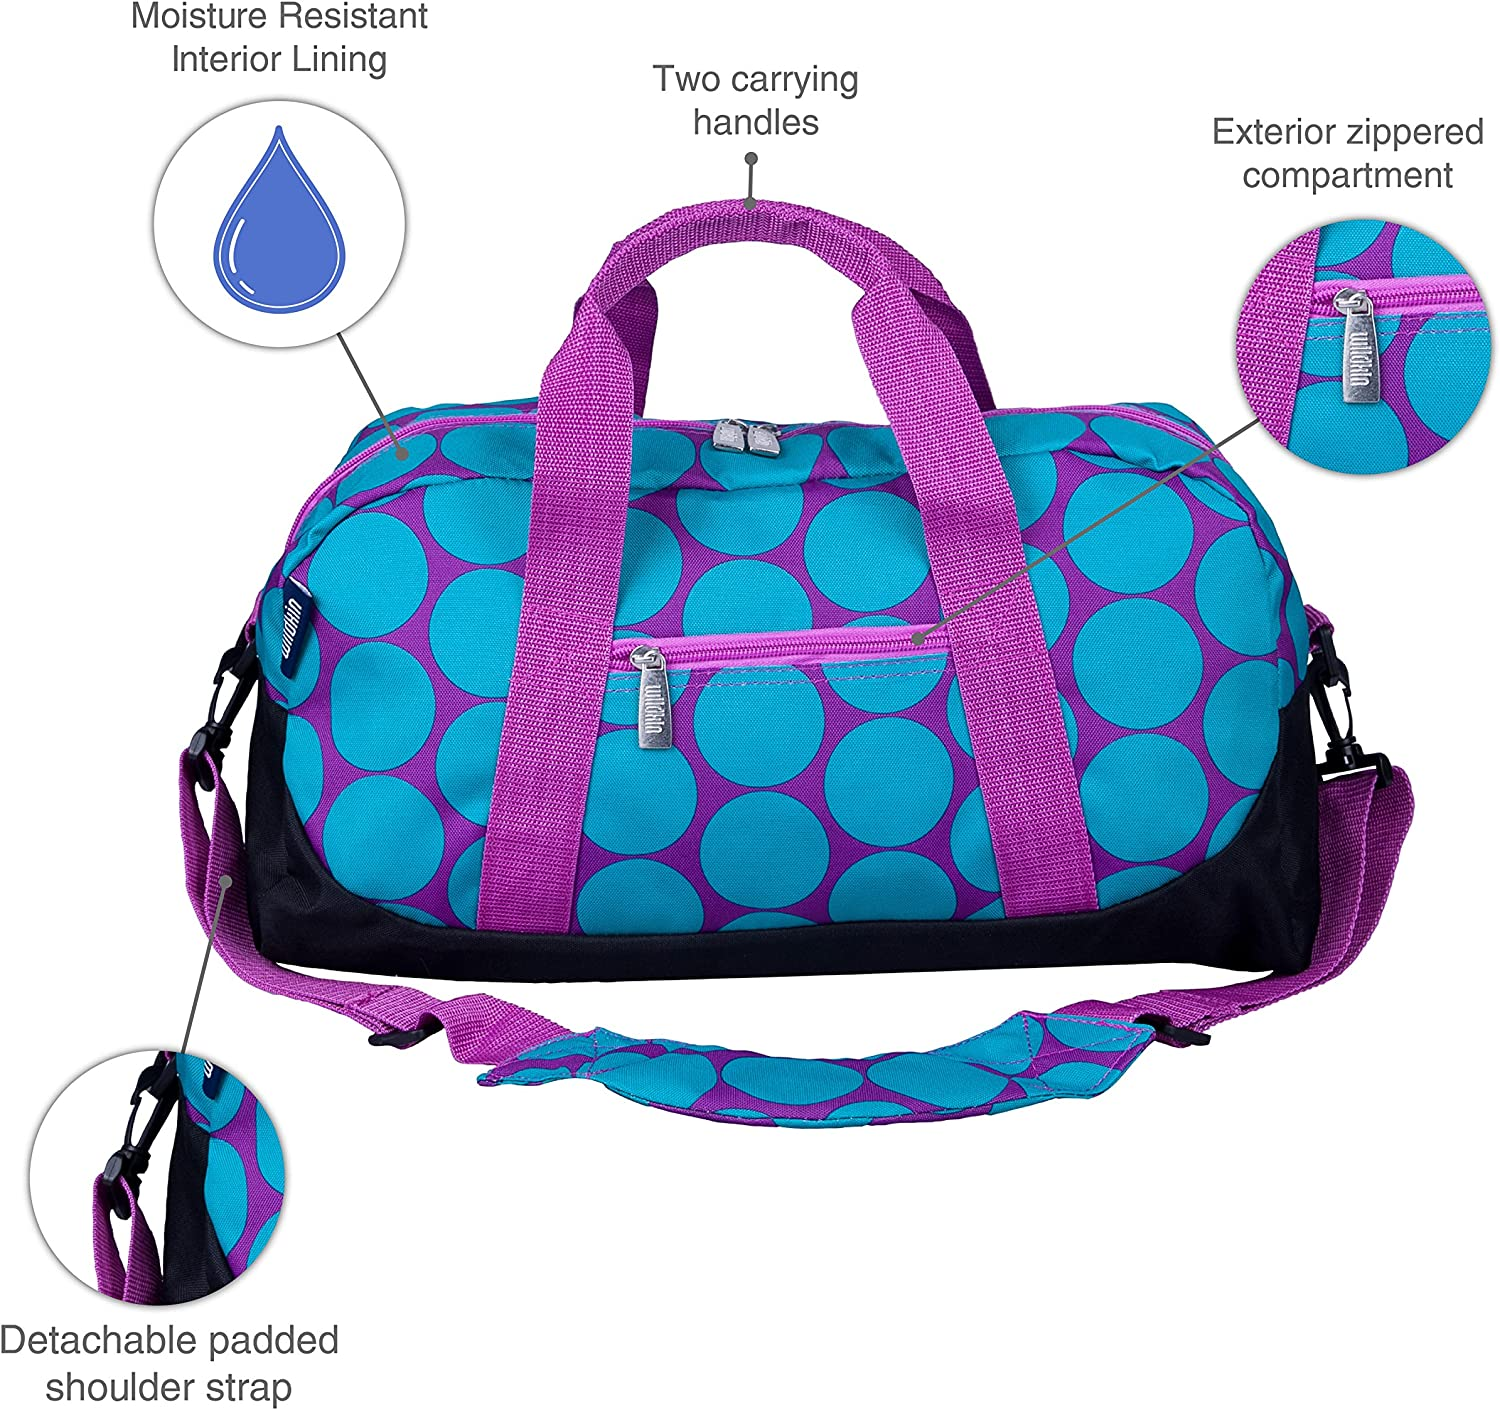 Zigzag Pink Sports Practice Carry-On Size Wildkin Weekender Duffle Bag Features Removable Shoulder Strap and Moisture-Resistant Lining and Travel Perfect for Sleepovers